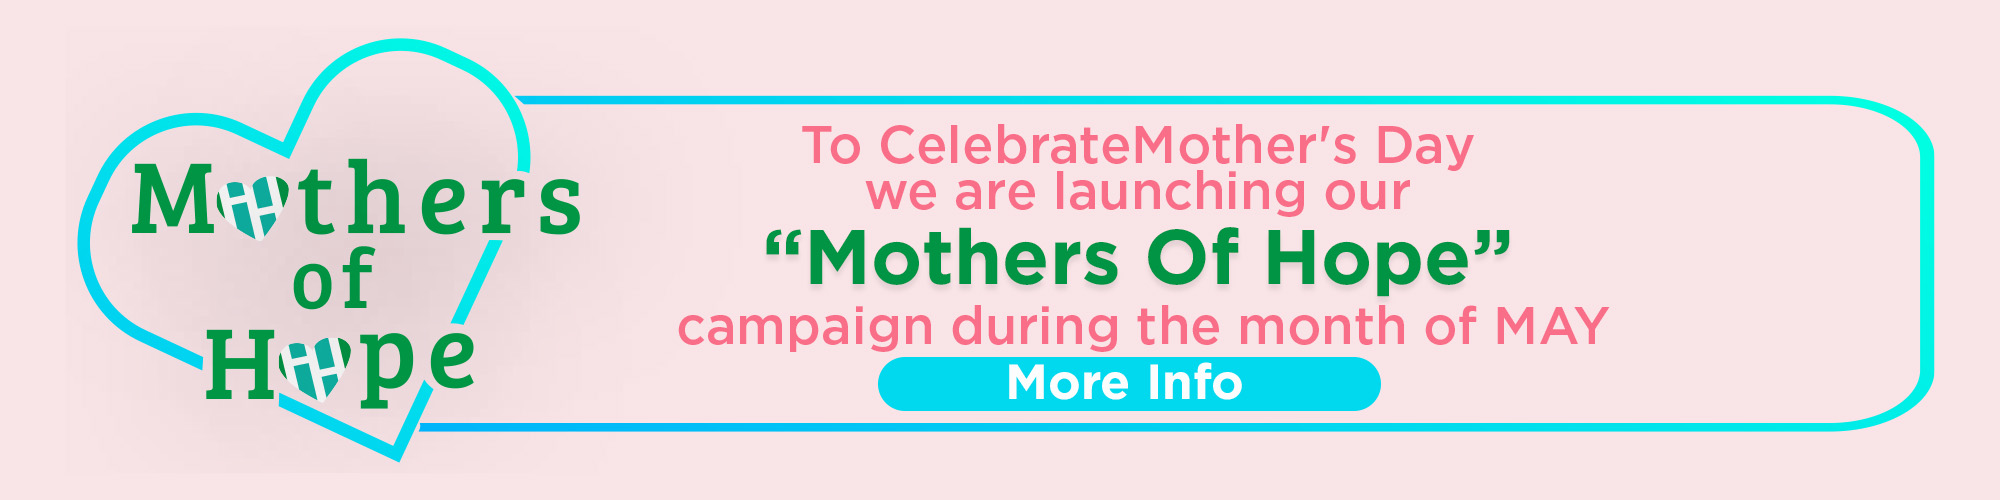 Mothers-web-banner